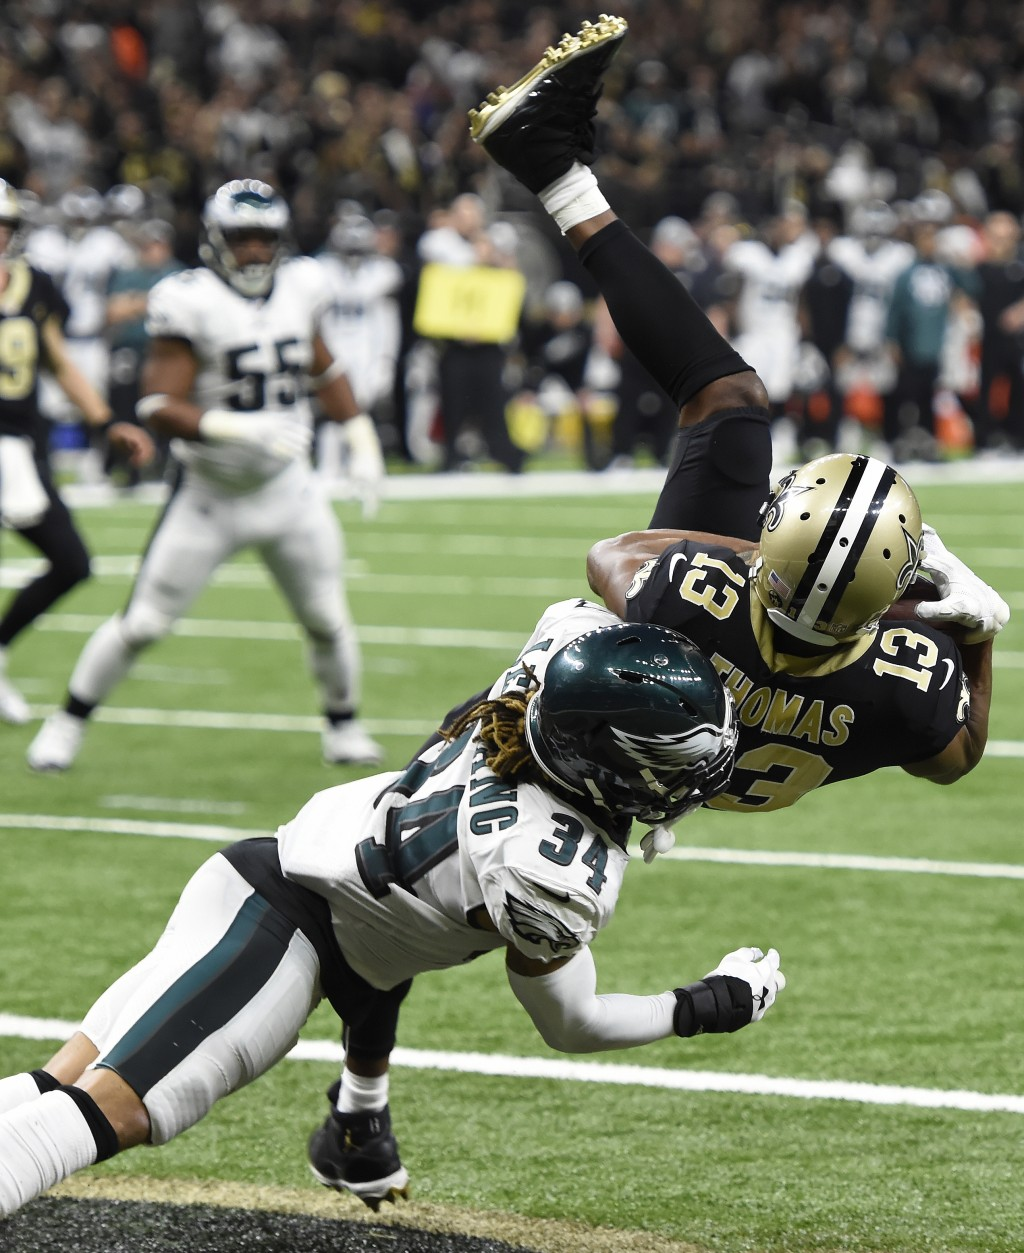 New Orleans Saints wide receiver Michael Thomas (13) pulls in a touchdown reception against Philadelphia Eagles cornerback Cre'von LeBlanc (34) in the